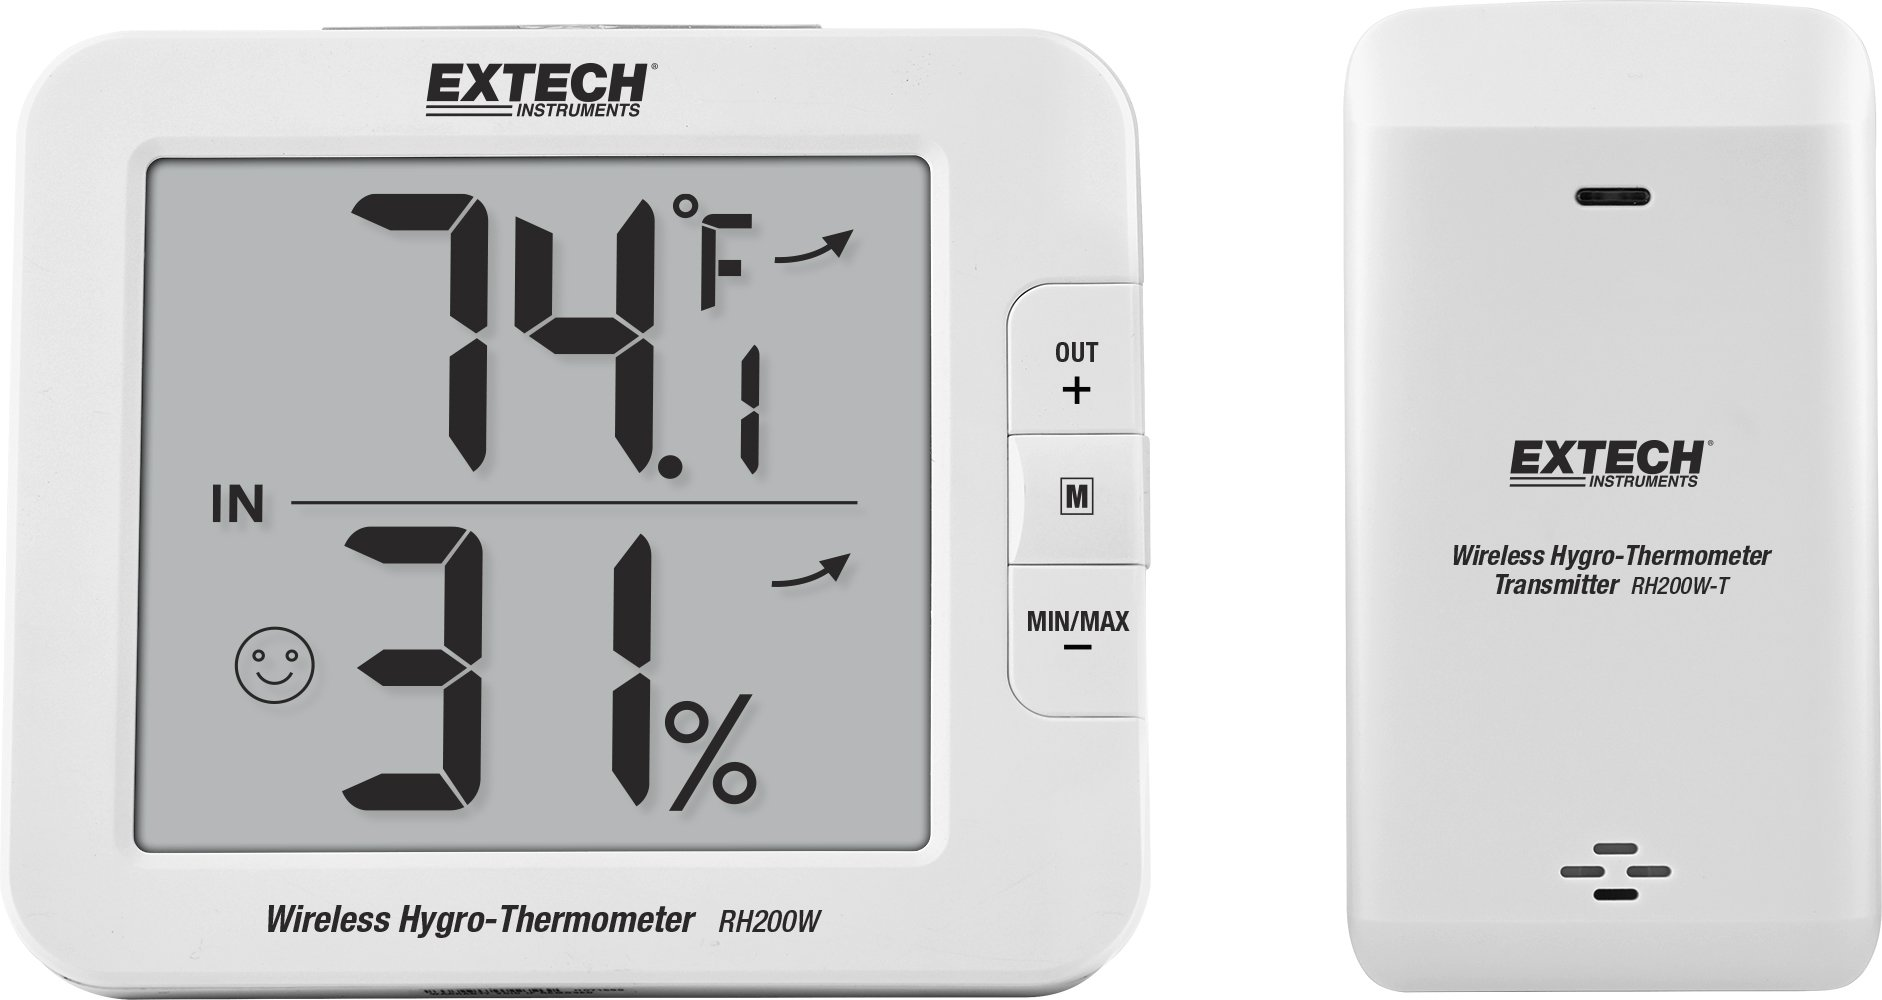 Extech RH200W Wireless Indoor/Outdoor Hygro-Thermometer Indicator